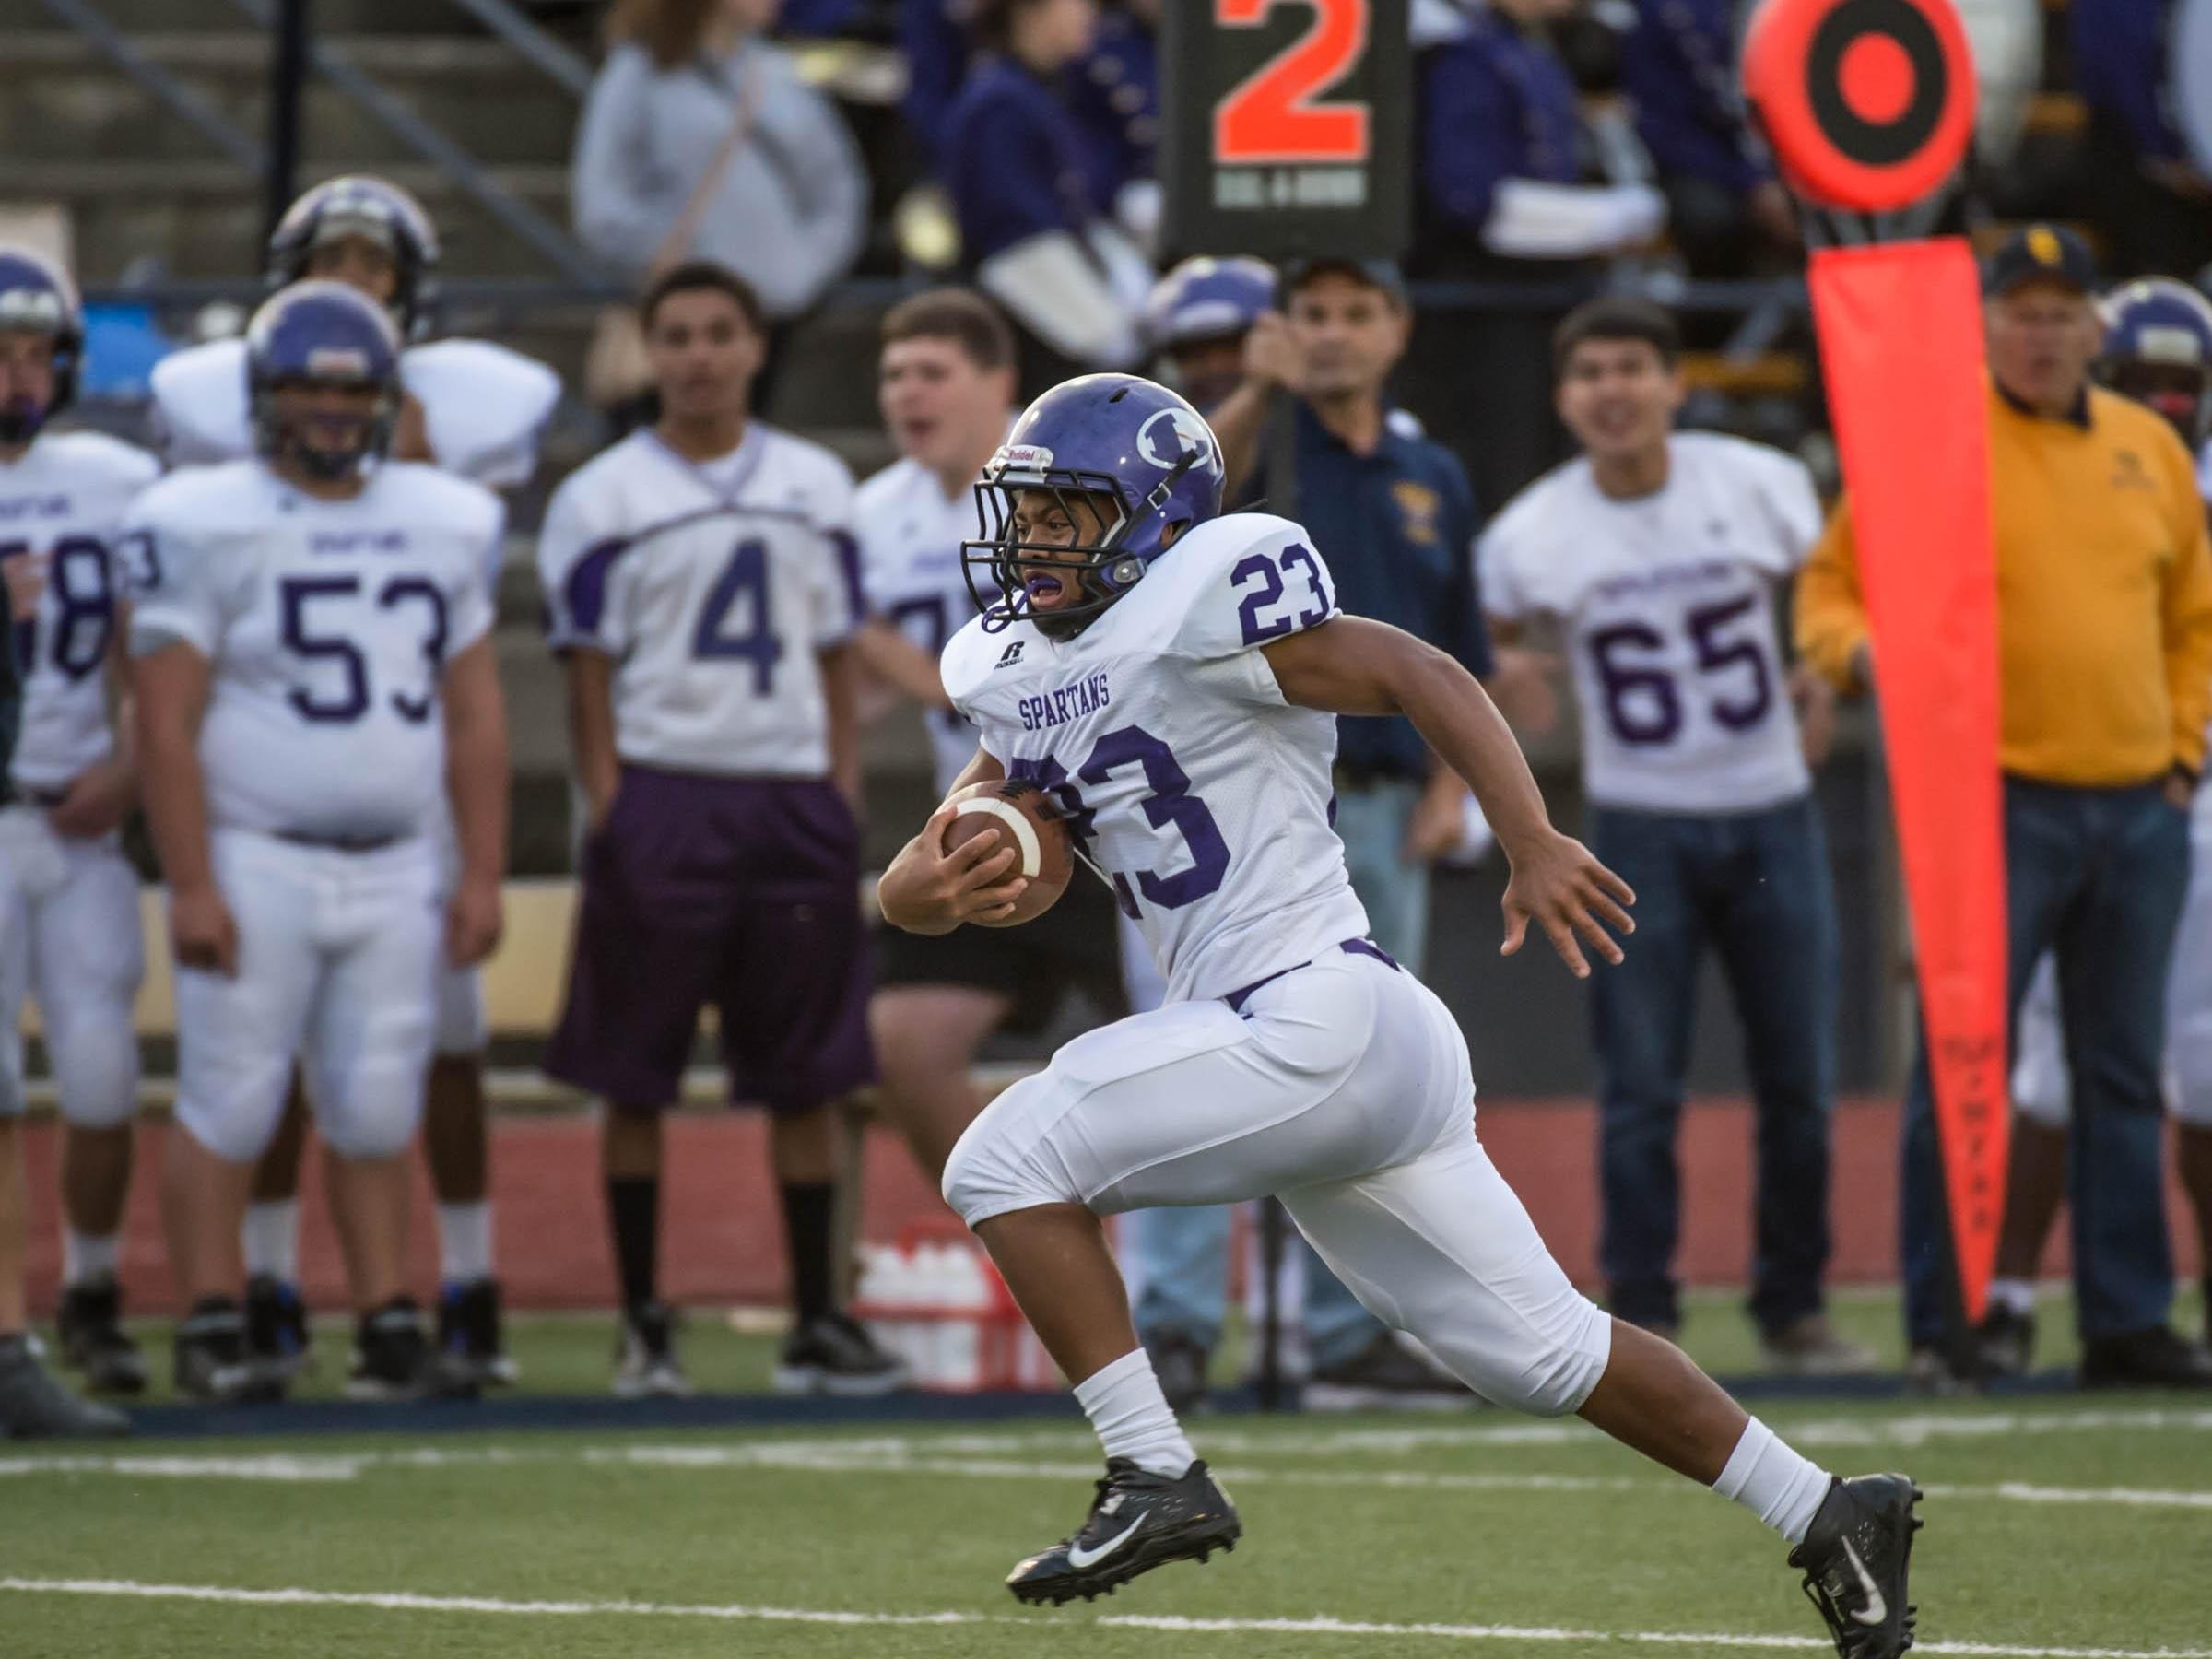 Lakeview's CJ Foster runs for big yardage during first half action against Battle Creek Central on Friday evening.